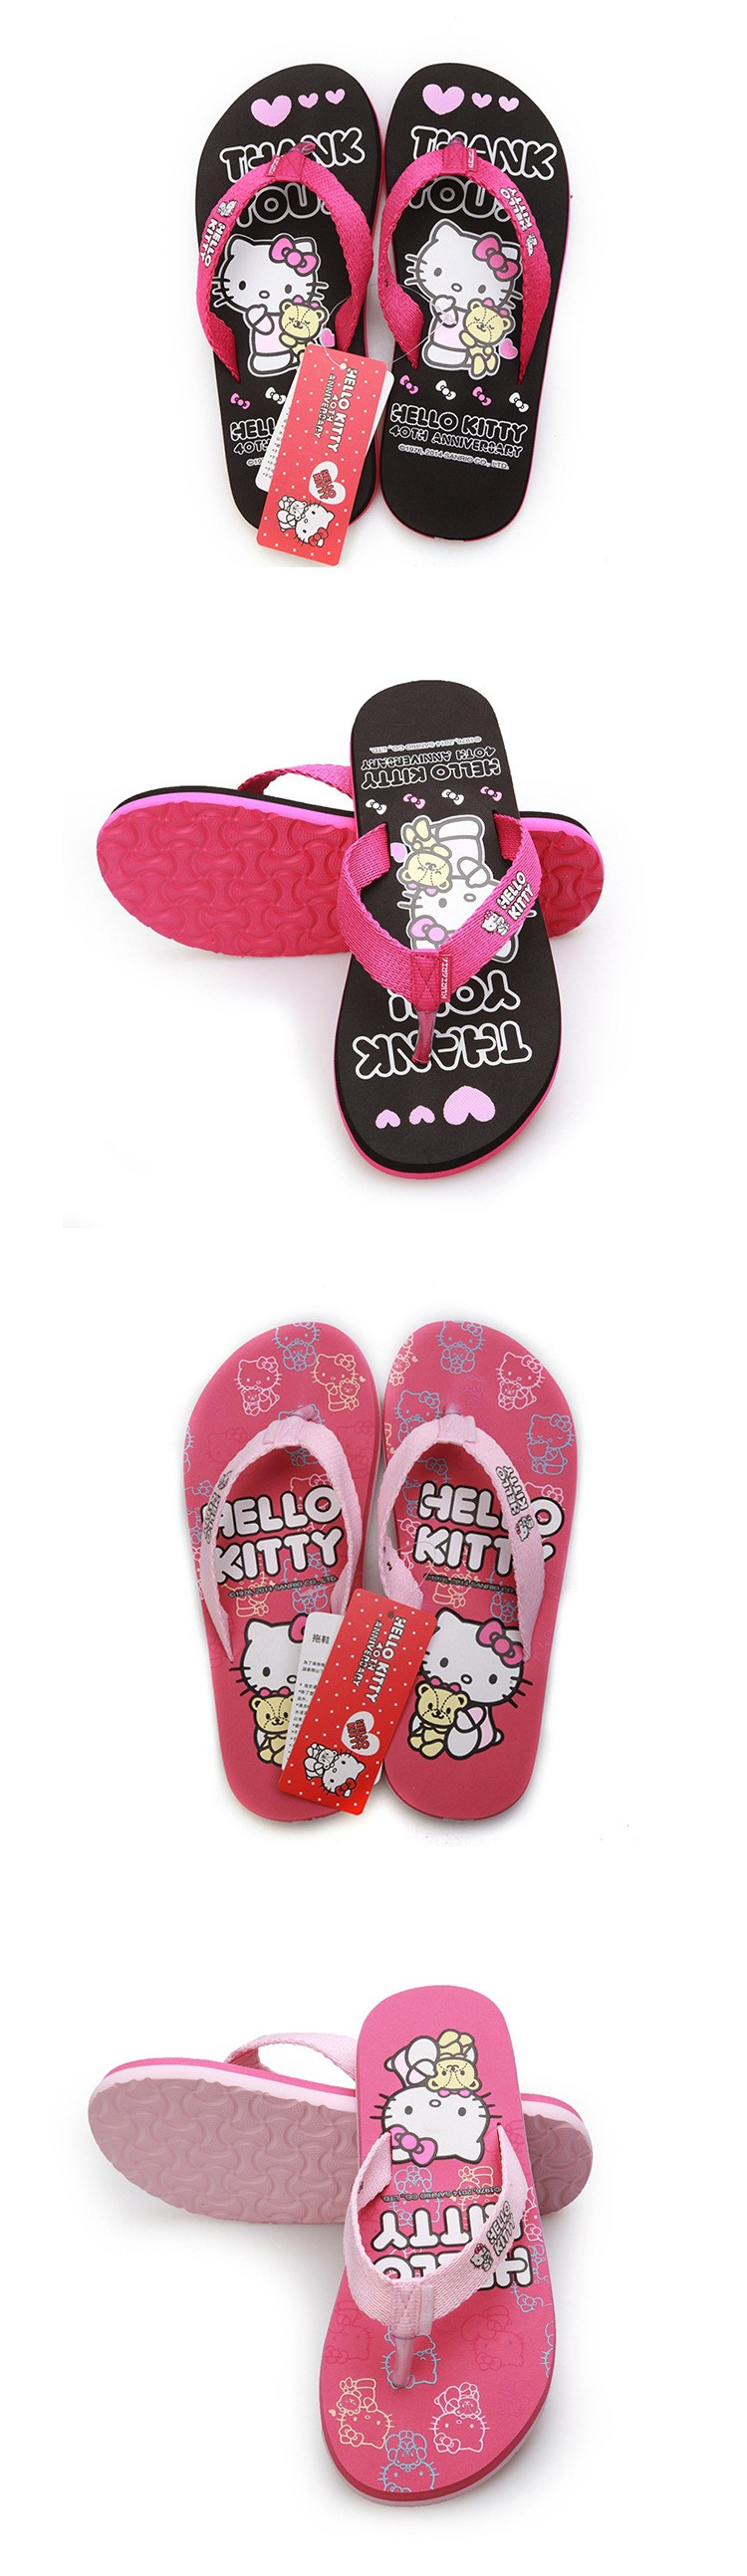 Hello Kitty Flip-Flops 8